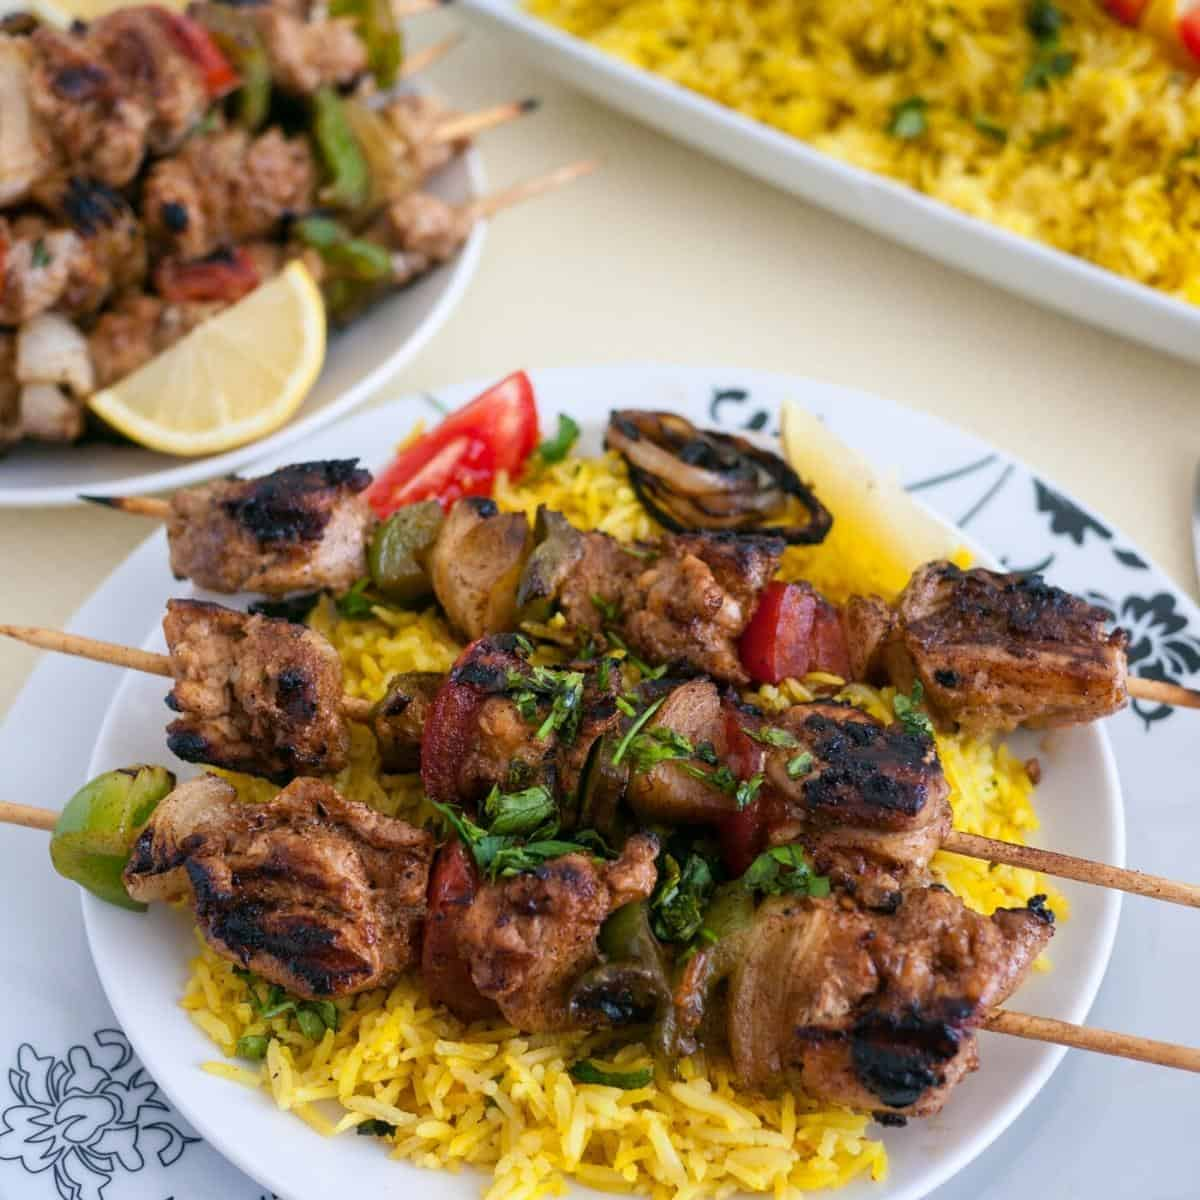 Grilled chicken skewers on a bed of yellow rice.